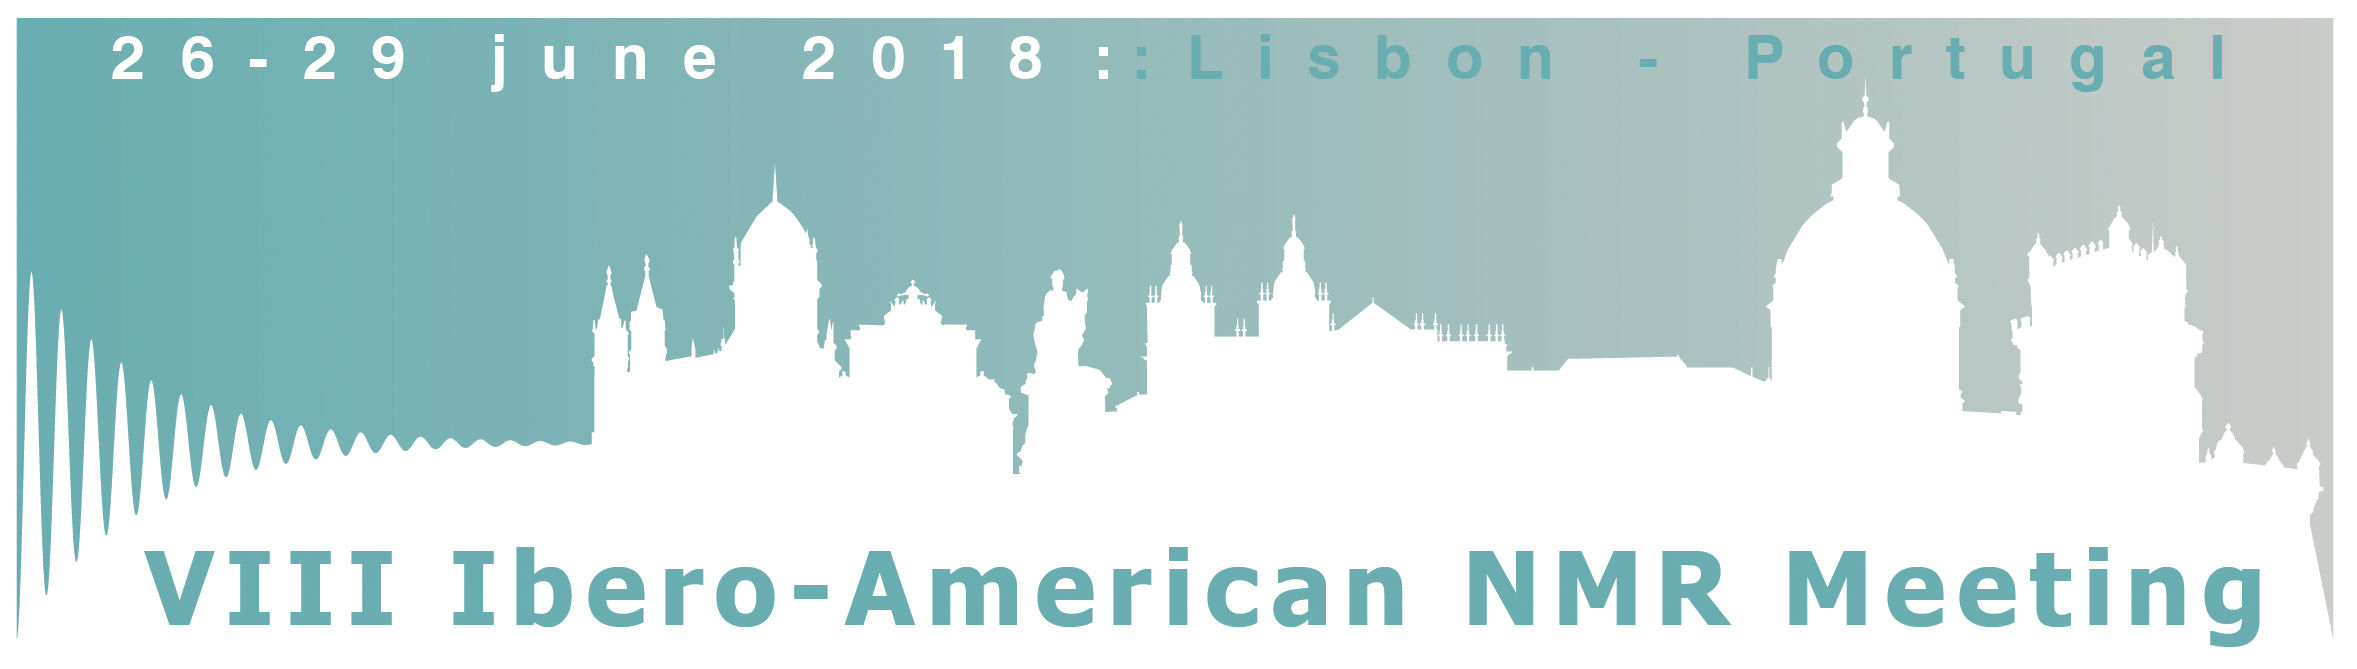 VIII Ibero-American NMR Meeting